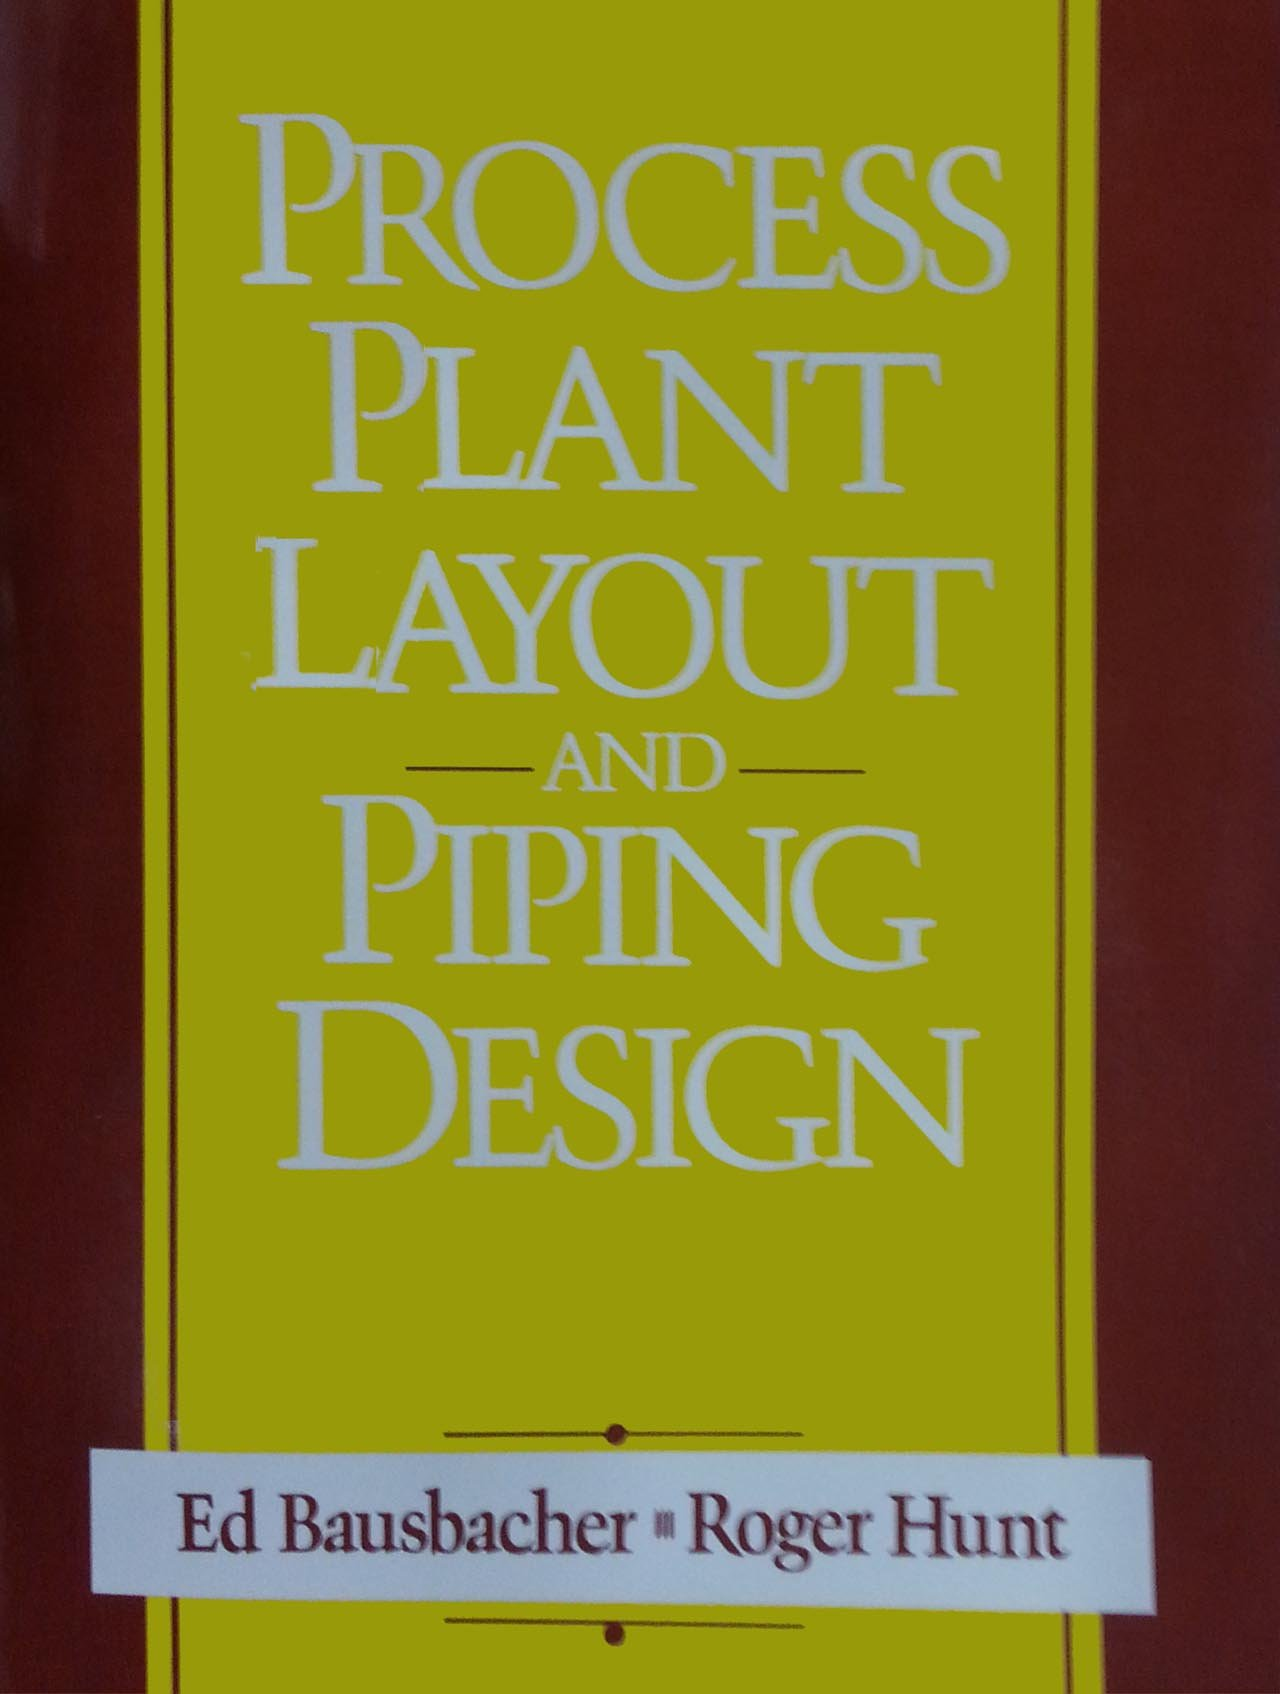 Buy Process Plant Layout And Piping Design Book Online At Low Prices Manual In India Reviews Ratings